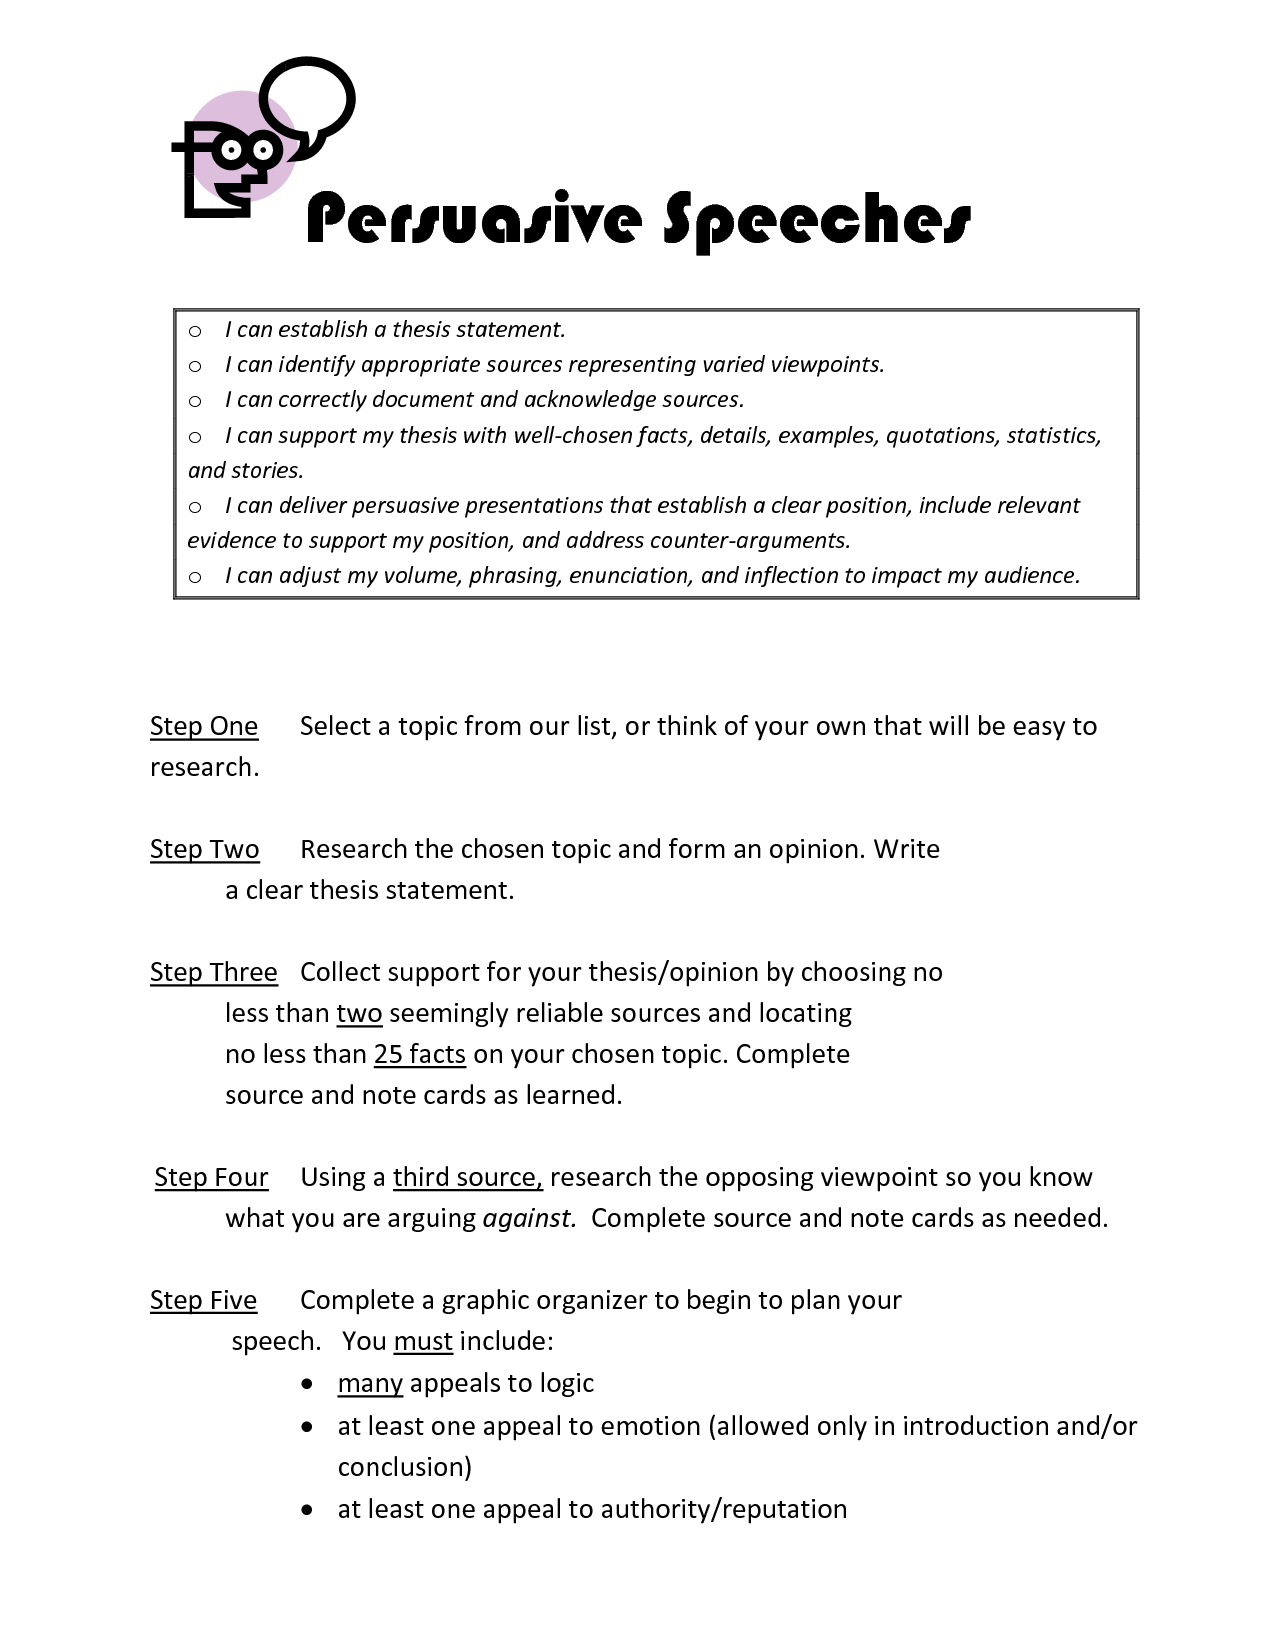 argumentative speeches